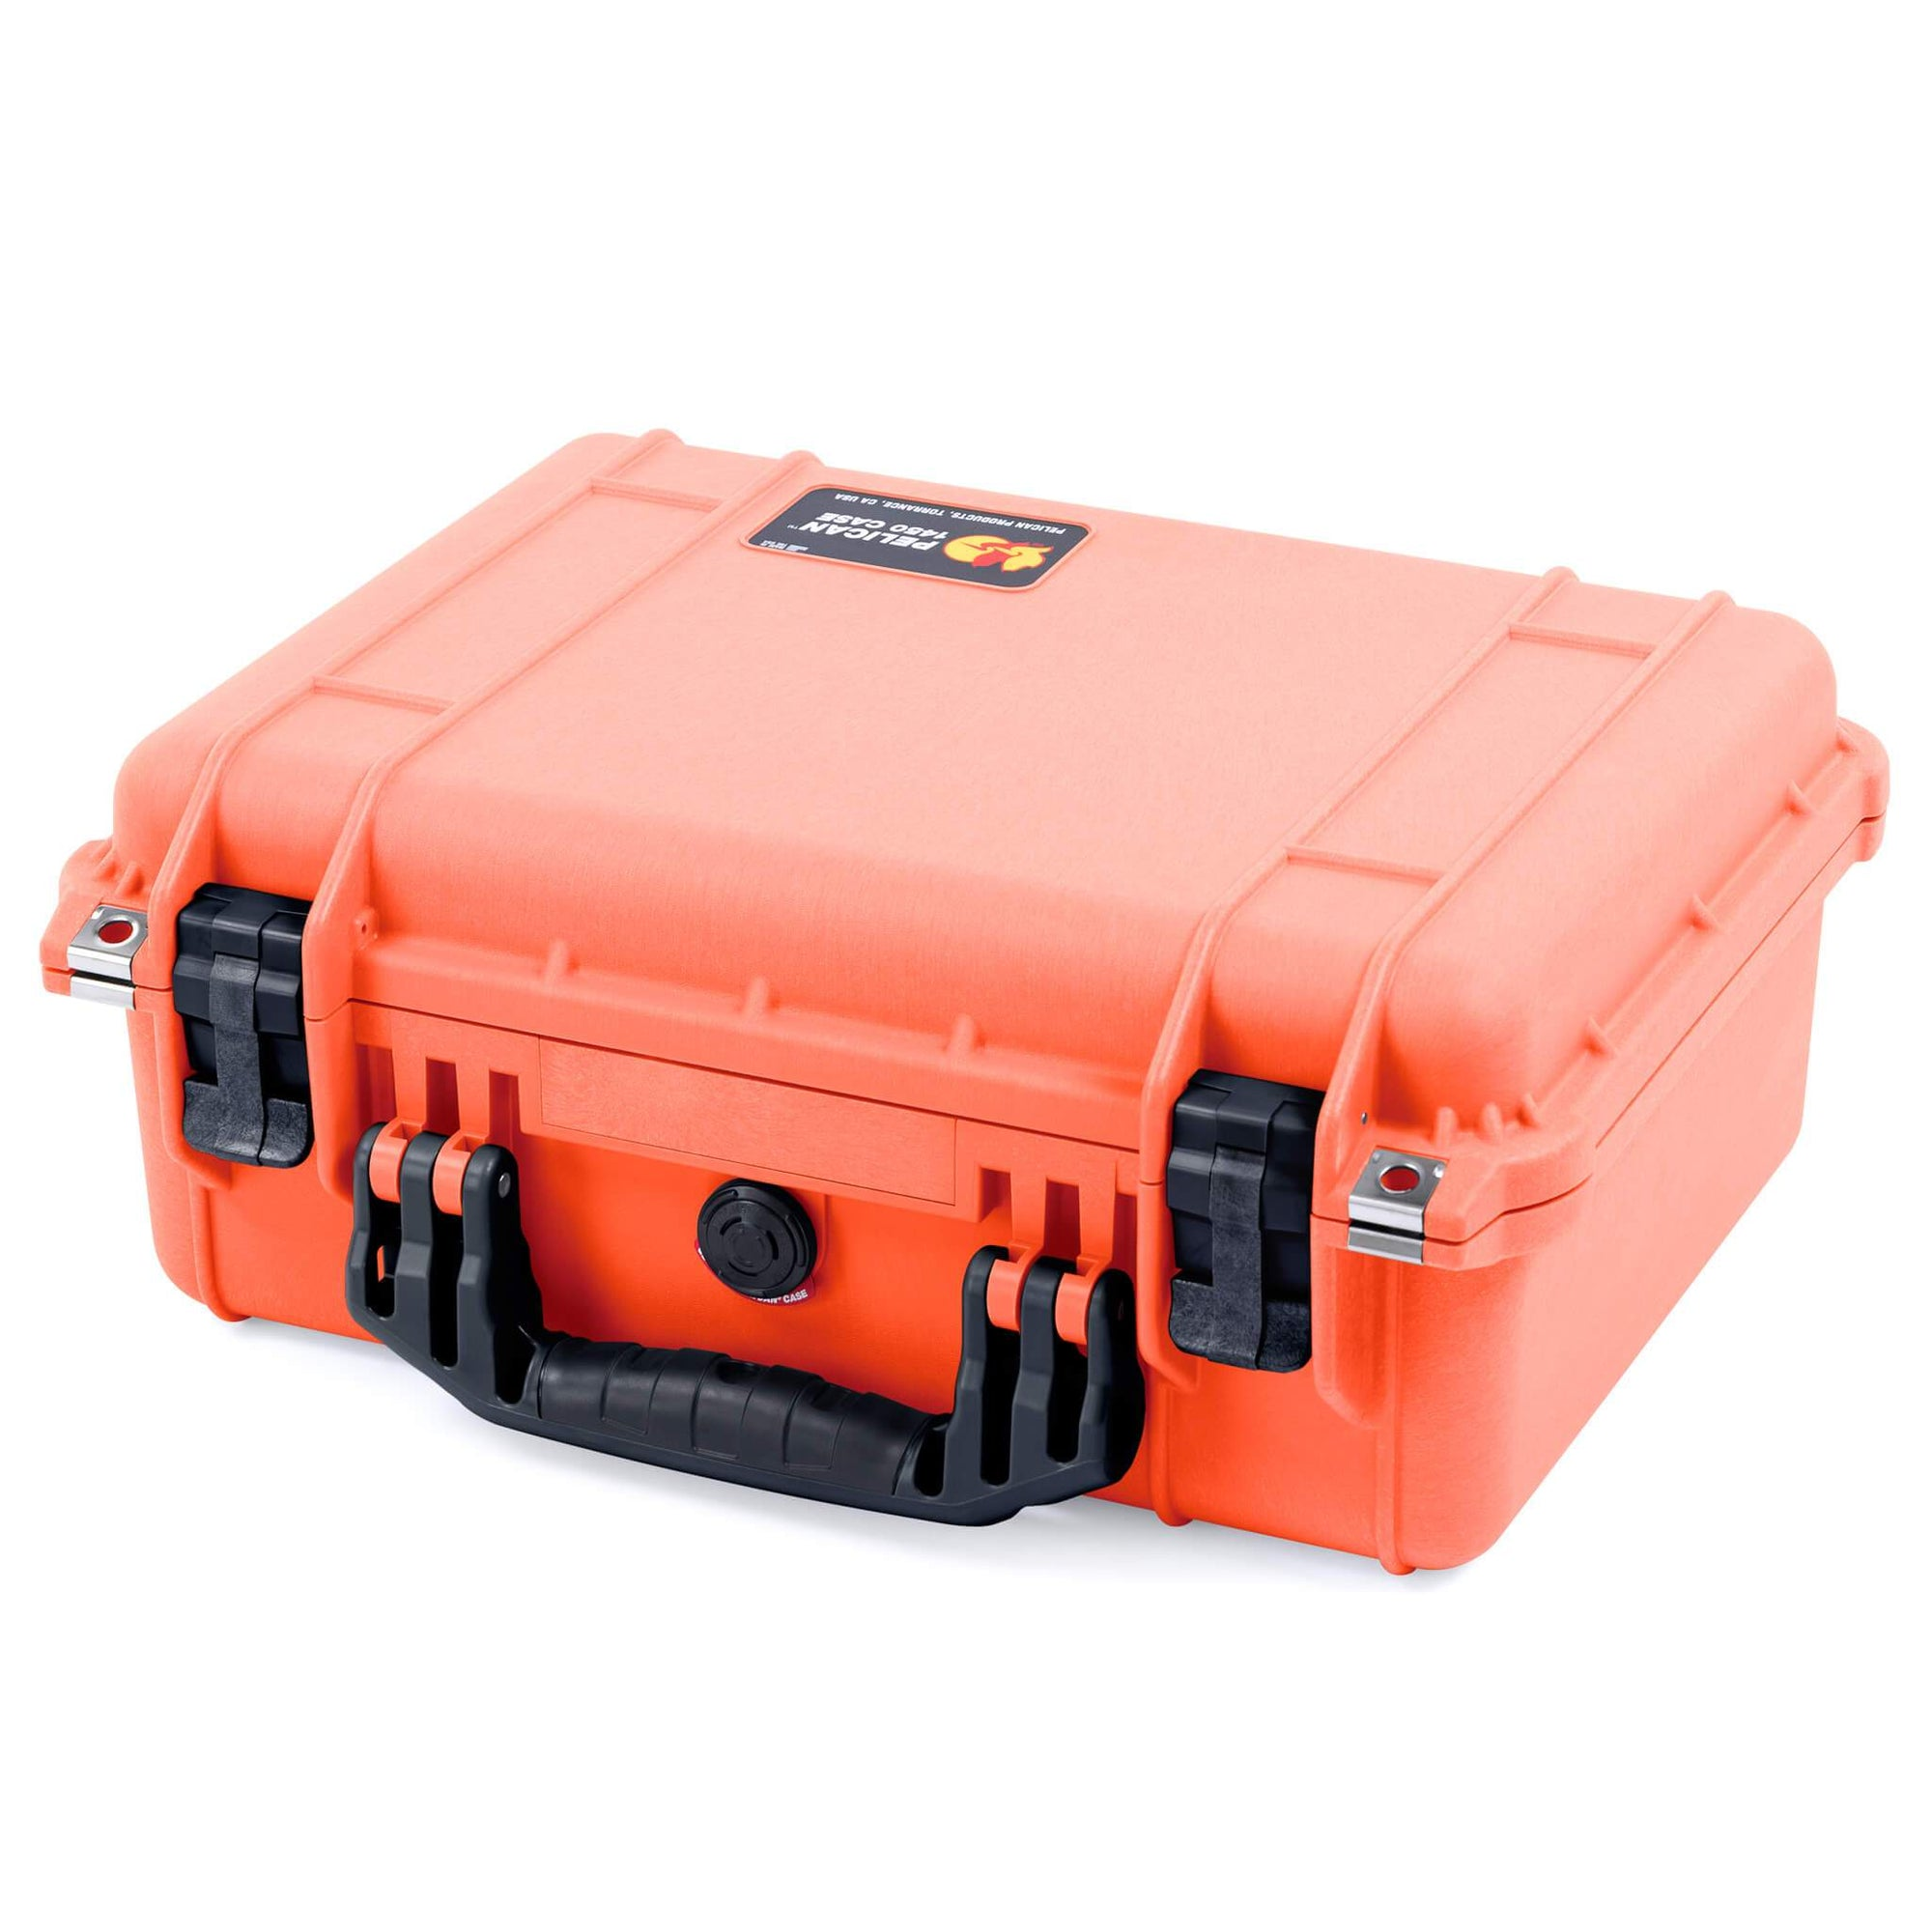 Pelican 1450 Colors Series, Orange Protector Case with Black Handle & Latches, Customizable Accessory Bundles - Pelican Color Case